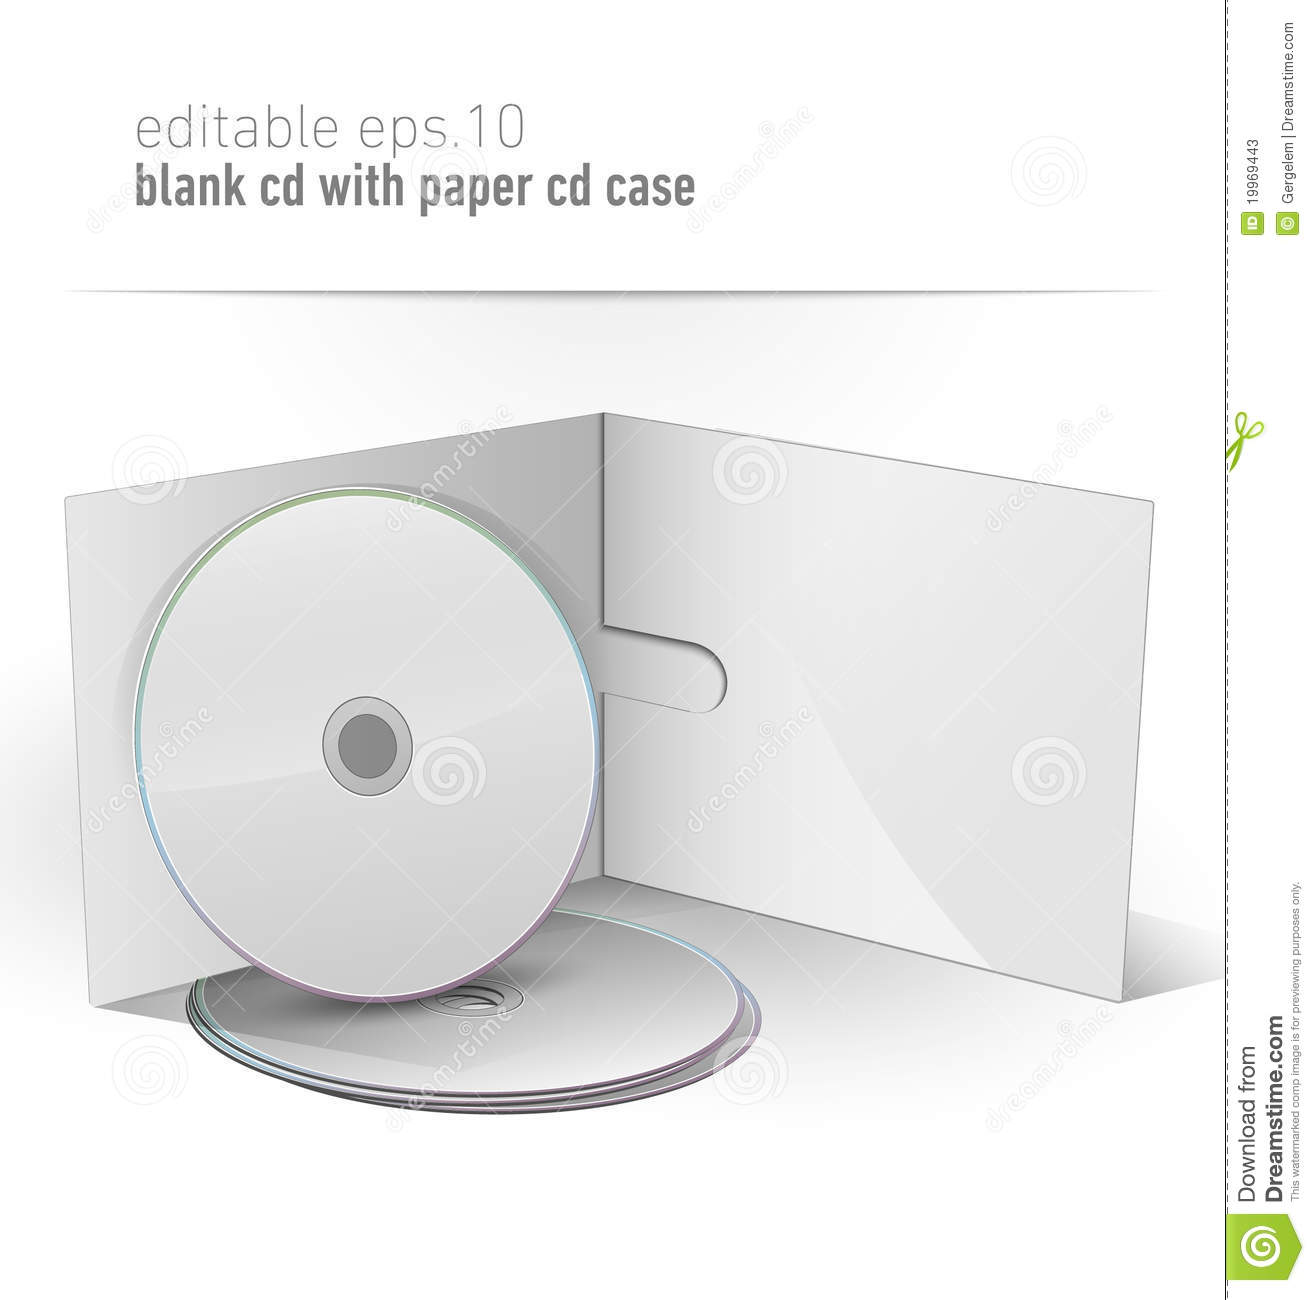 Cd And Paper Cd Case Stock Images - Image: 12116034